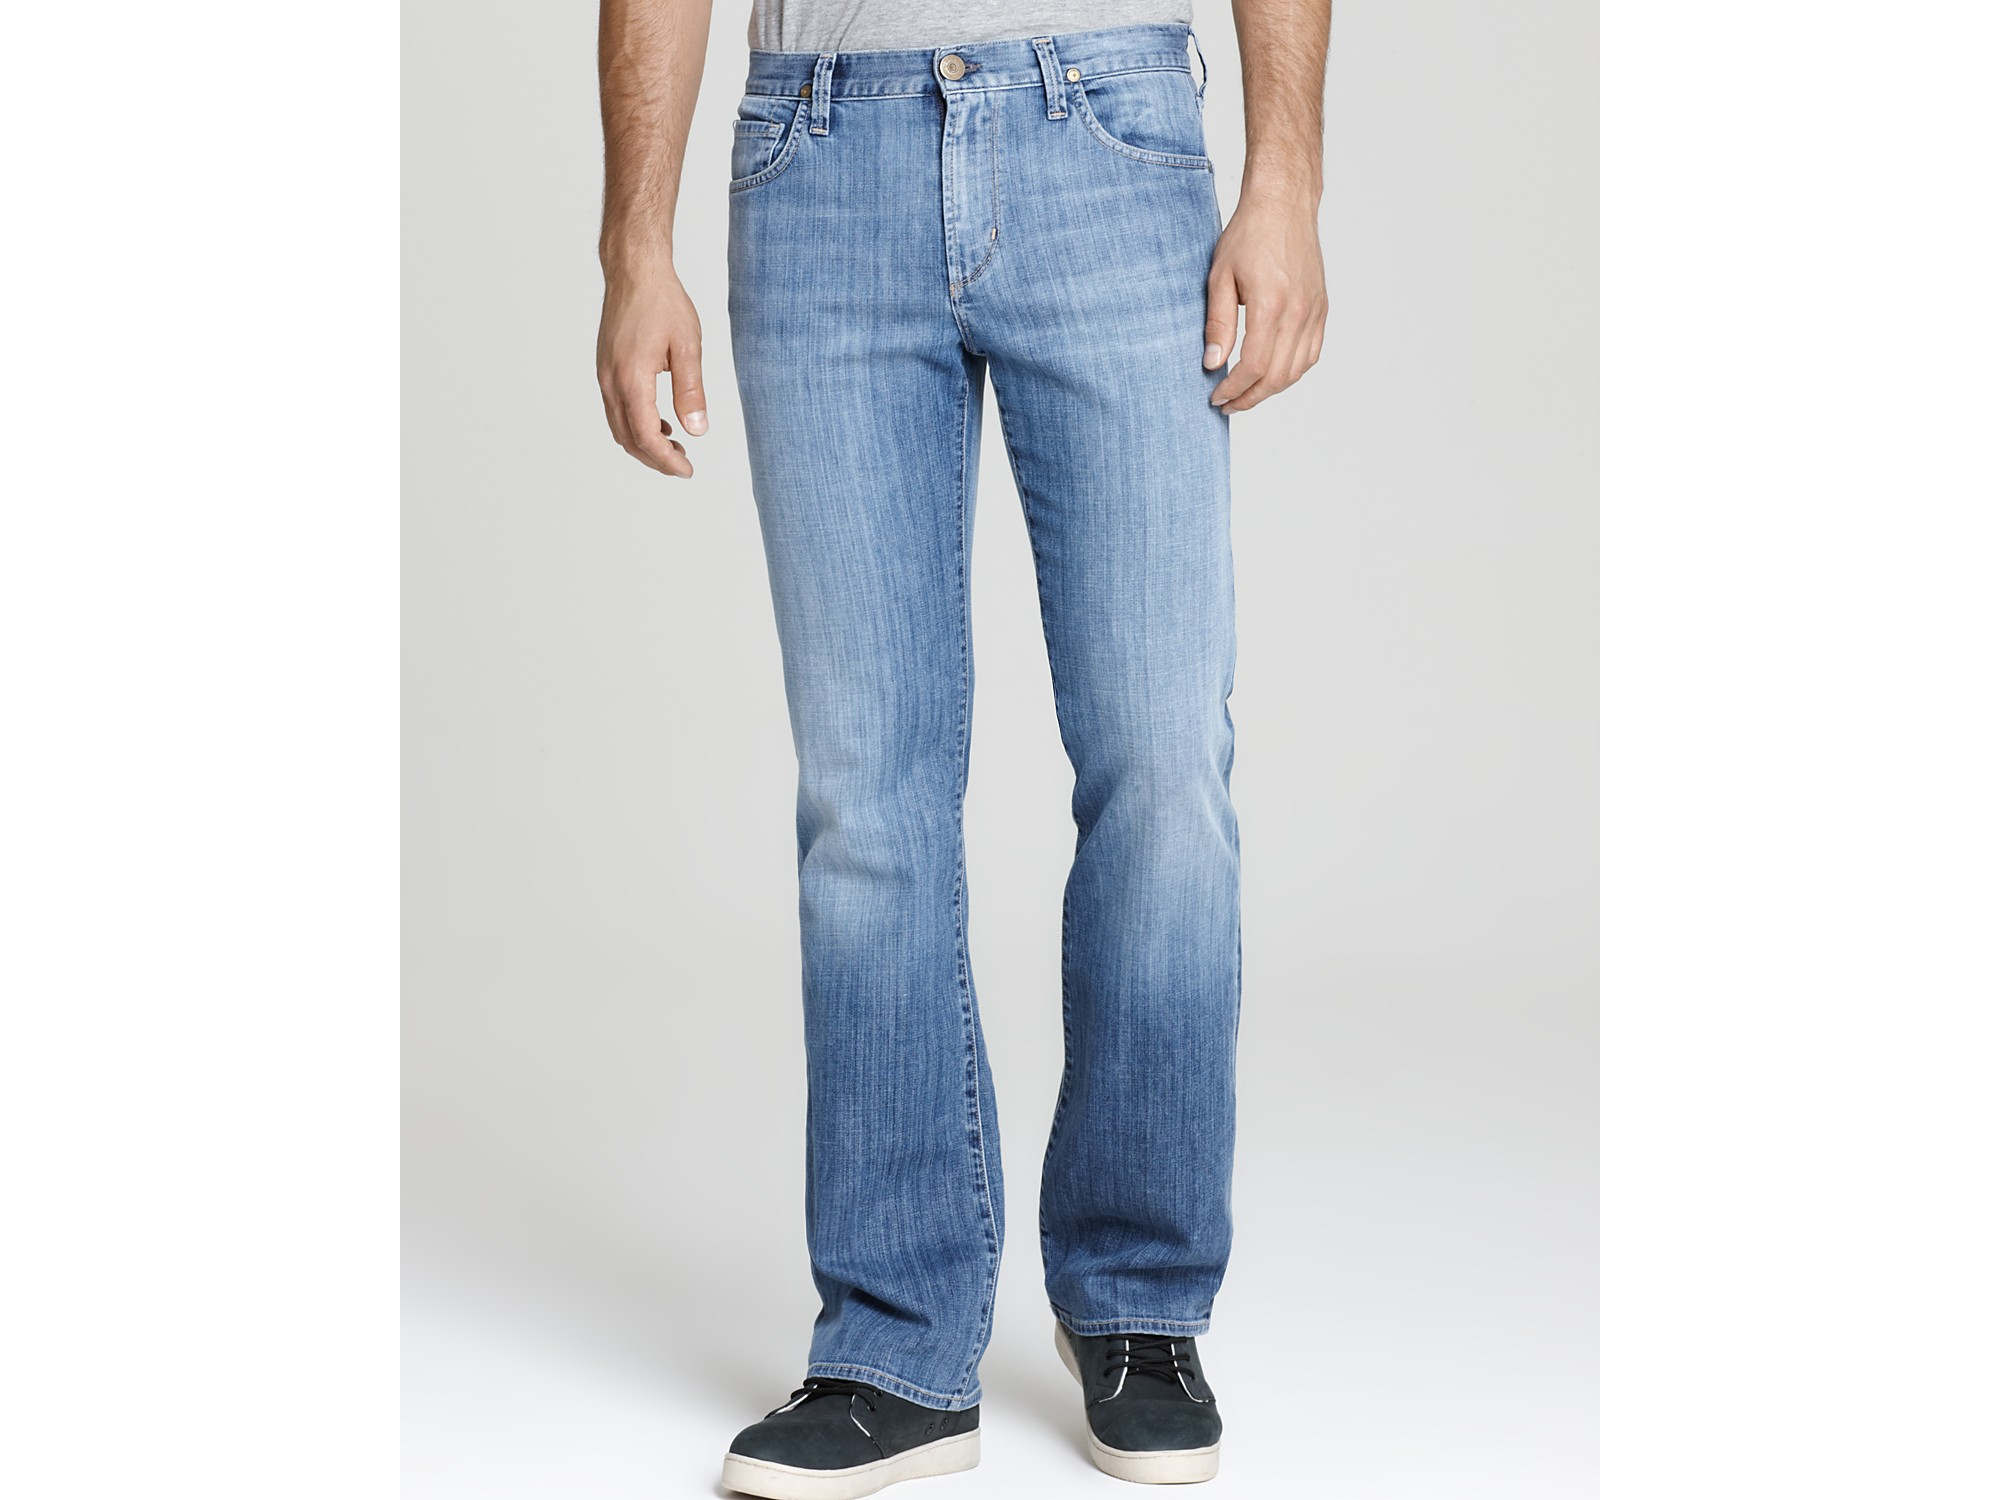 Vanity Jeans For Men : Ash bootcut jeans in vanity wash blue for men lyst